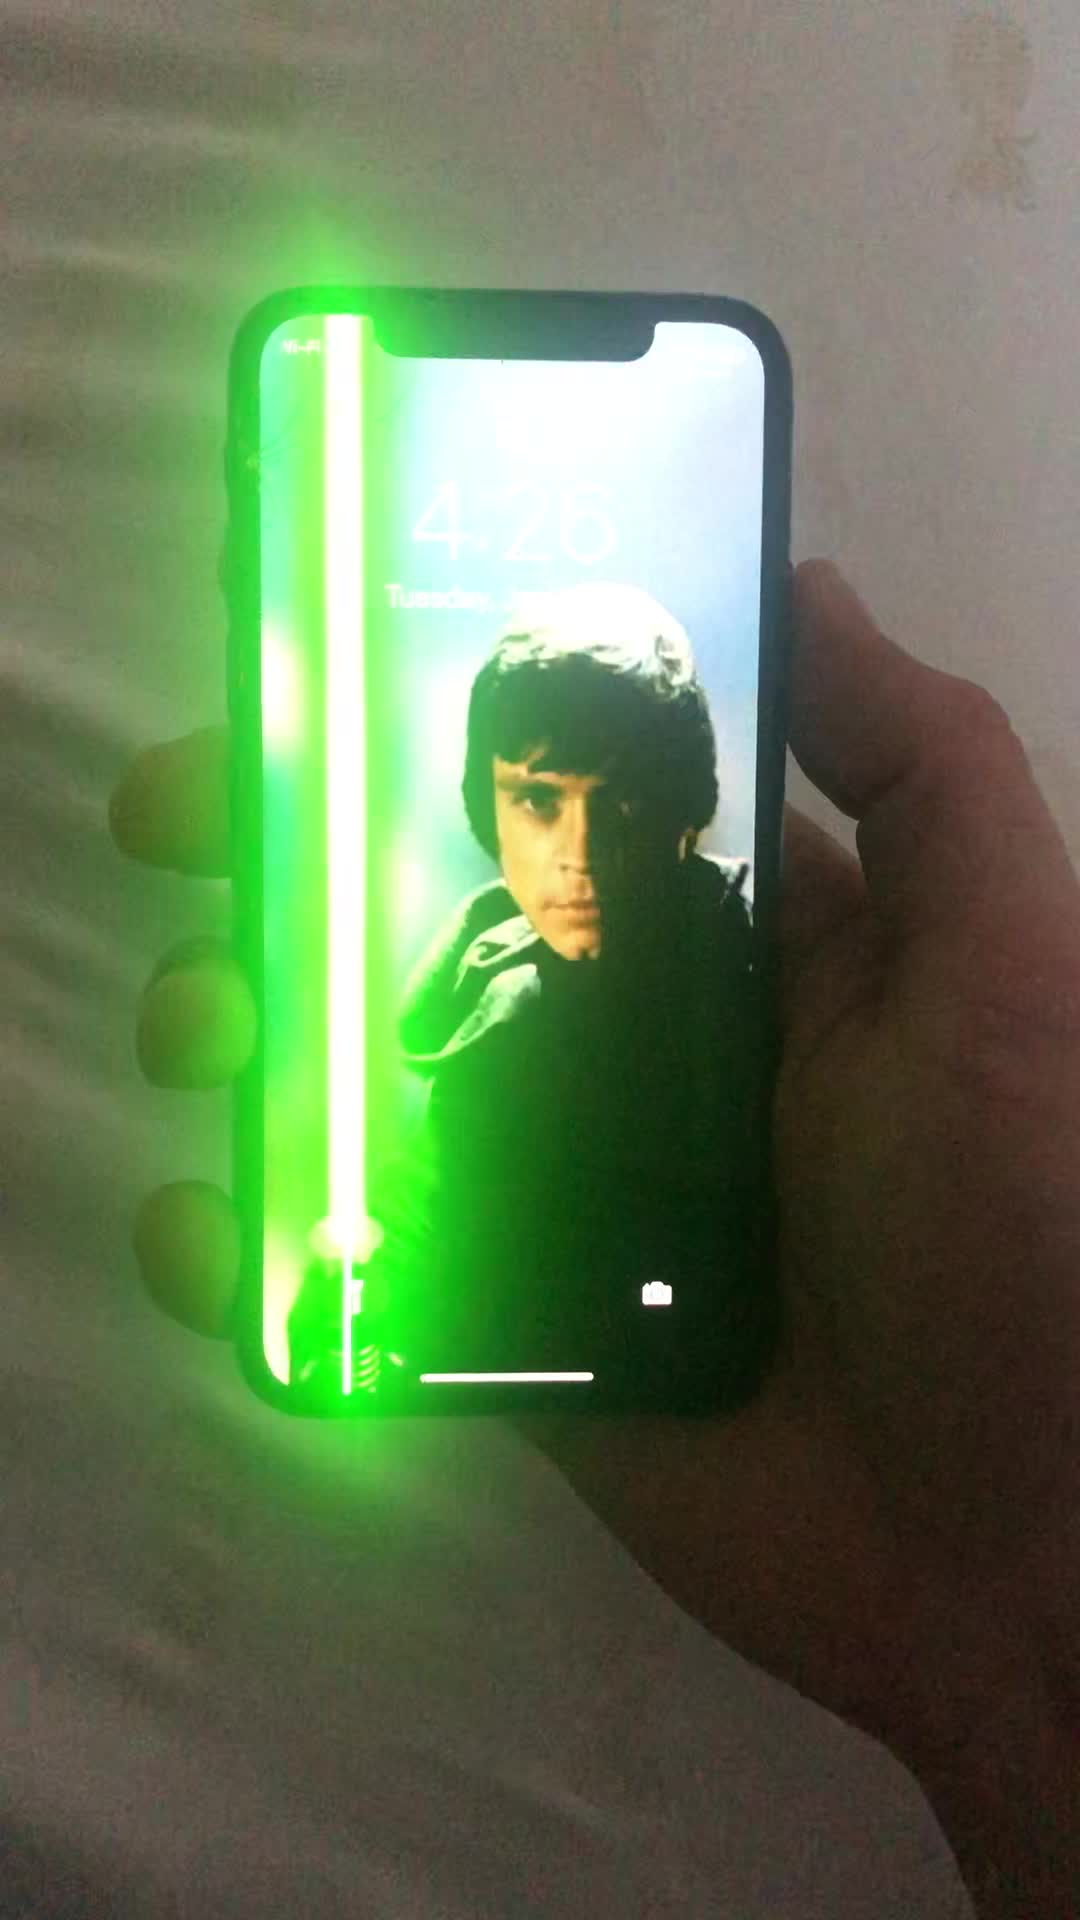 Broken Phone Becomes Perfect Background Image